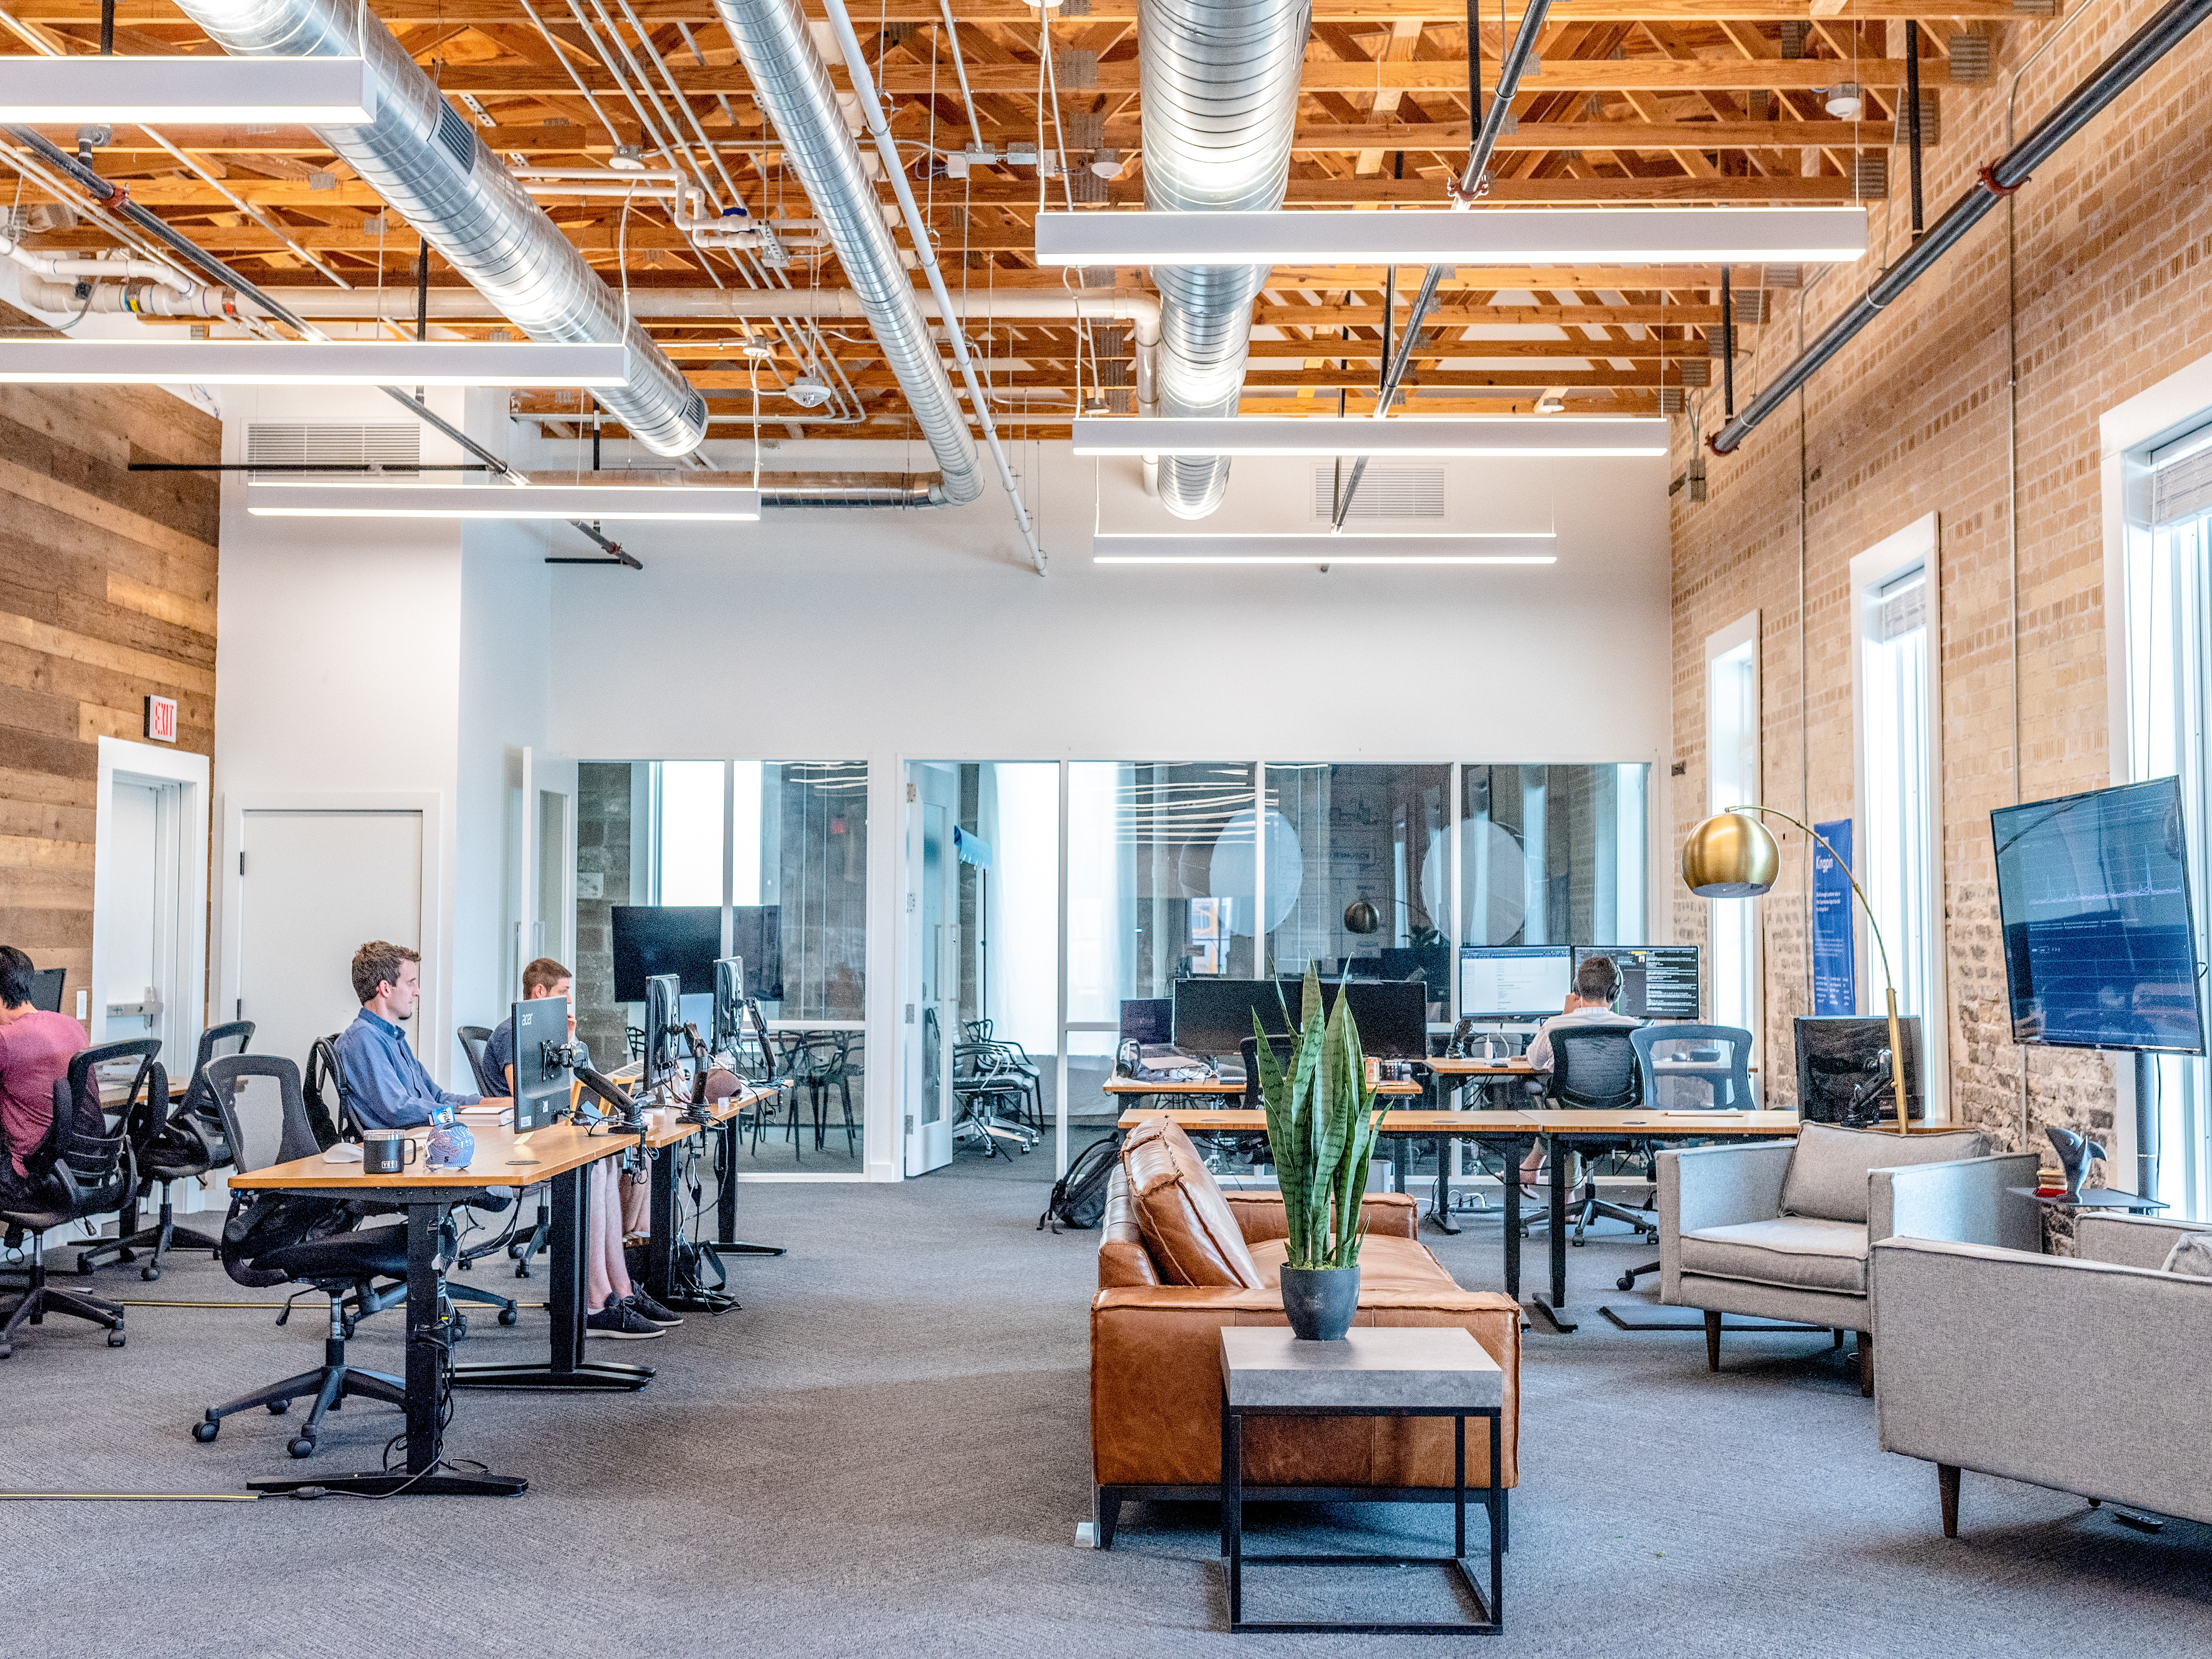 Co-working space vs Traditional Lease Space